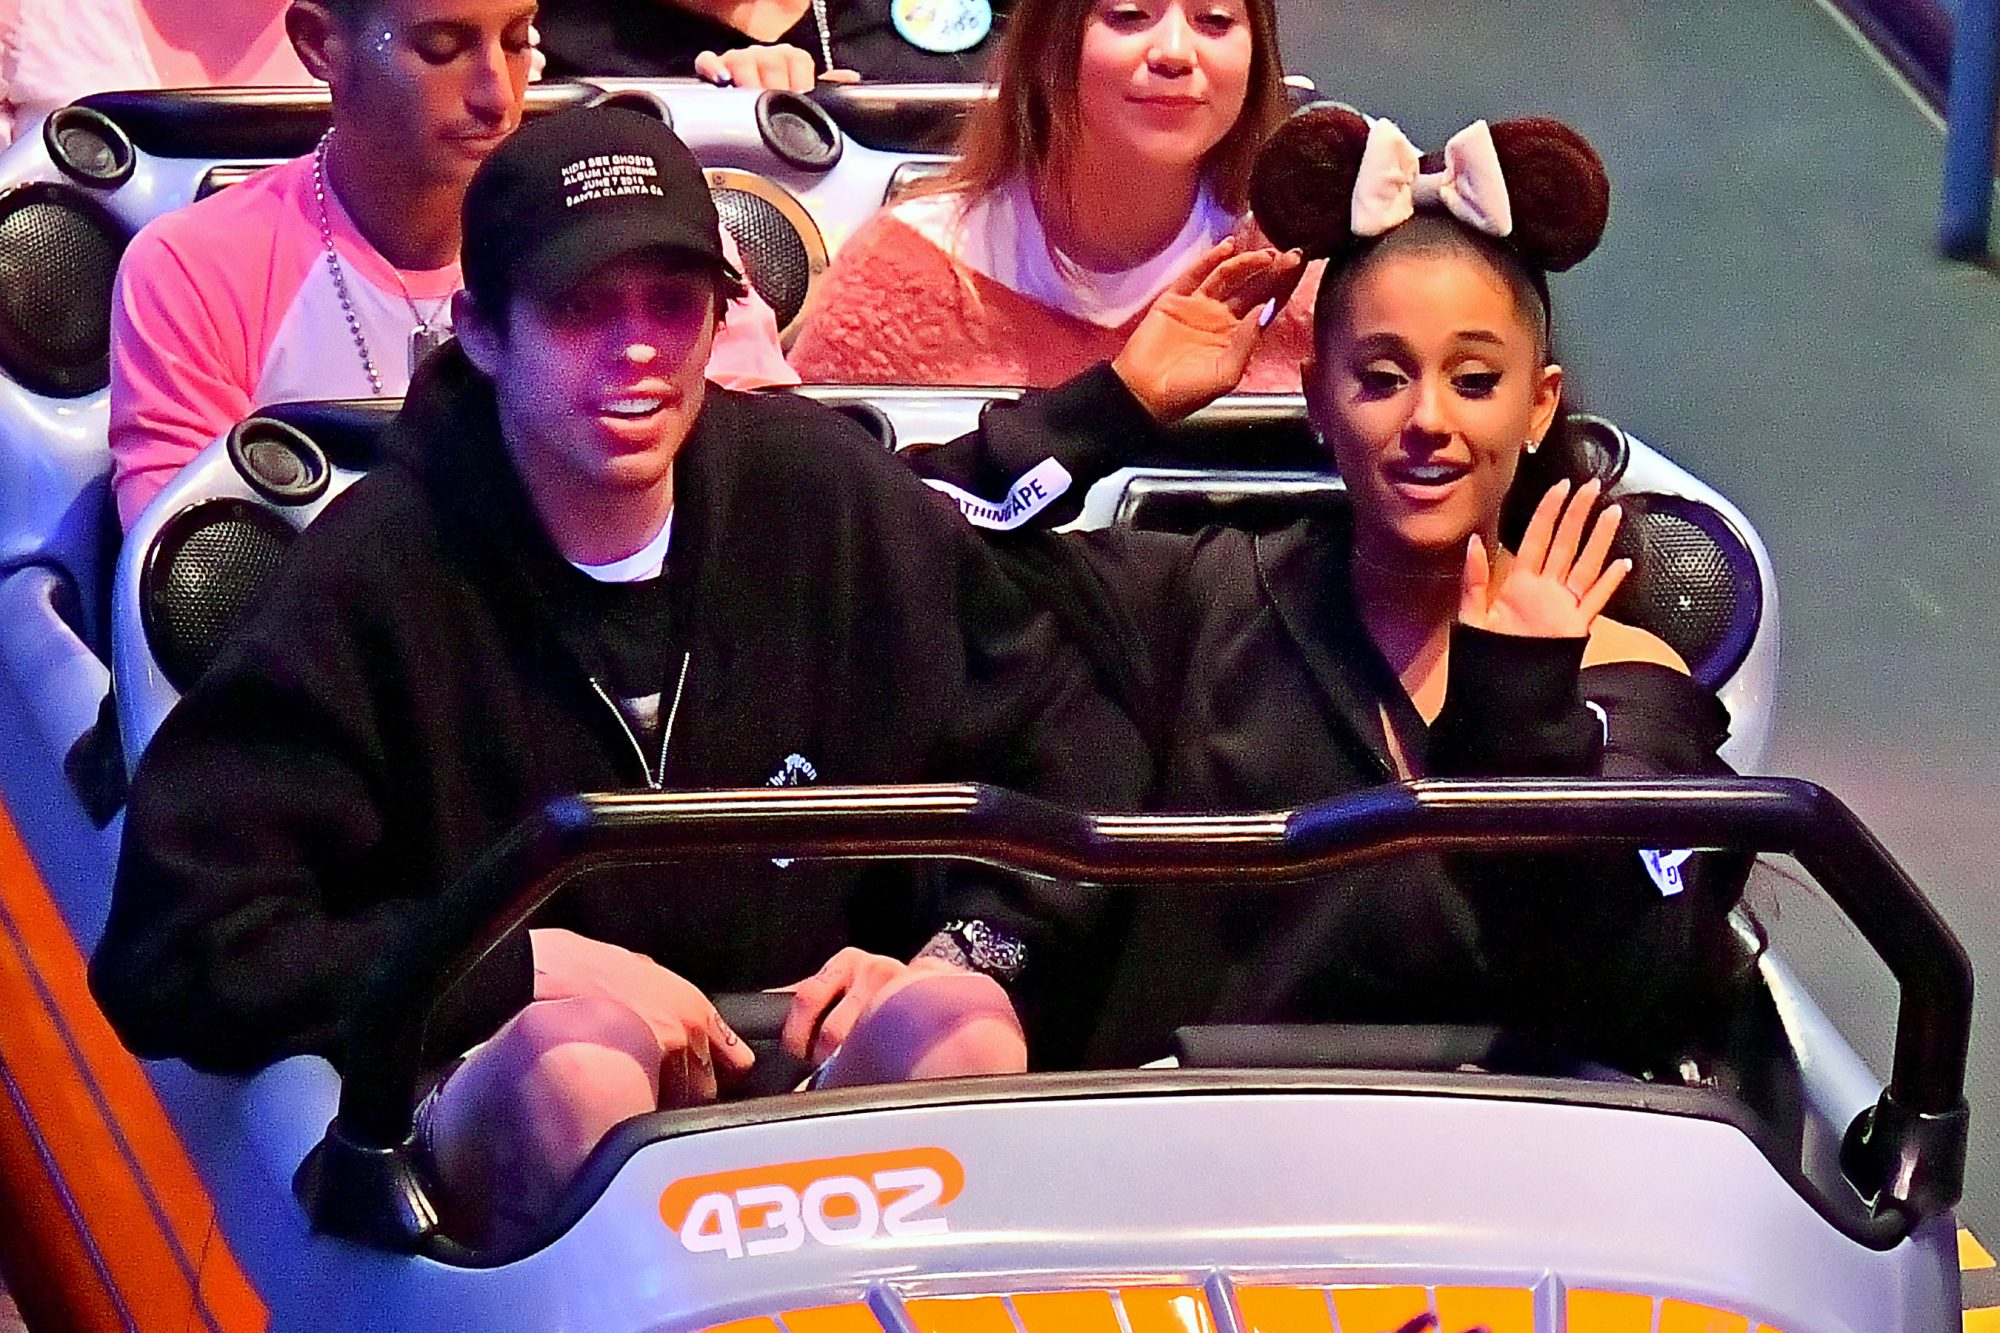 EXCLUSIVE: **PREMIUM RATES APPLY** STRICTLY NO WEB UNTIL 830AM PST JUNE 13TH 2018**  Ariana Grande and her new Fiancé Pete Davidson spend a fun evening at Disneyland after announcing their engagement